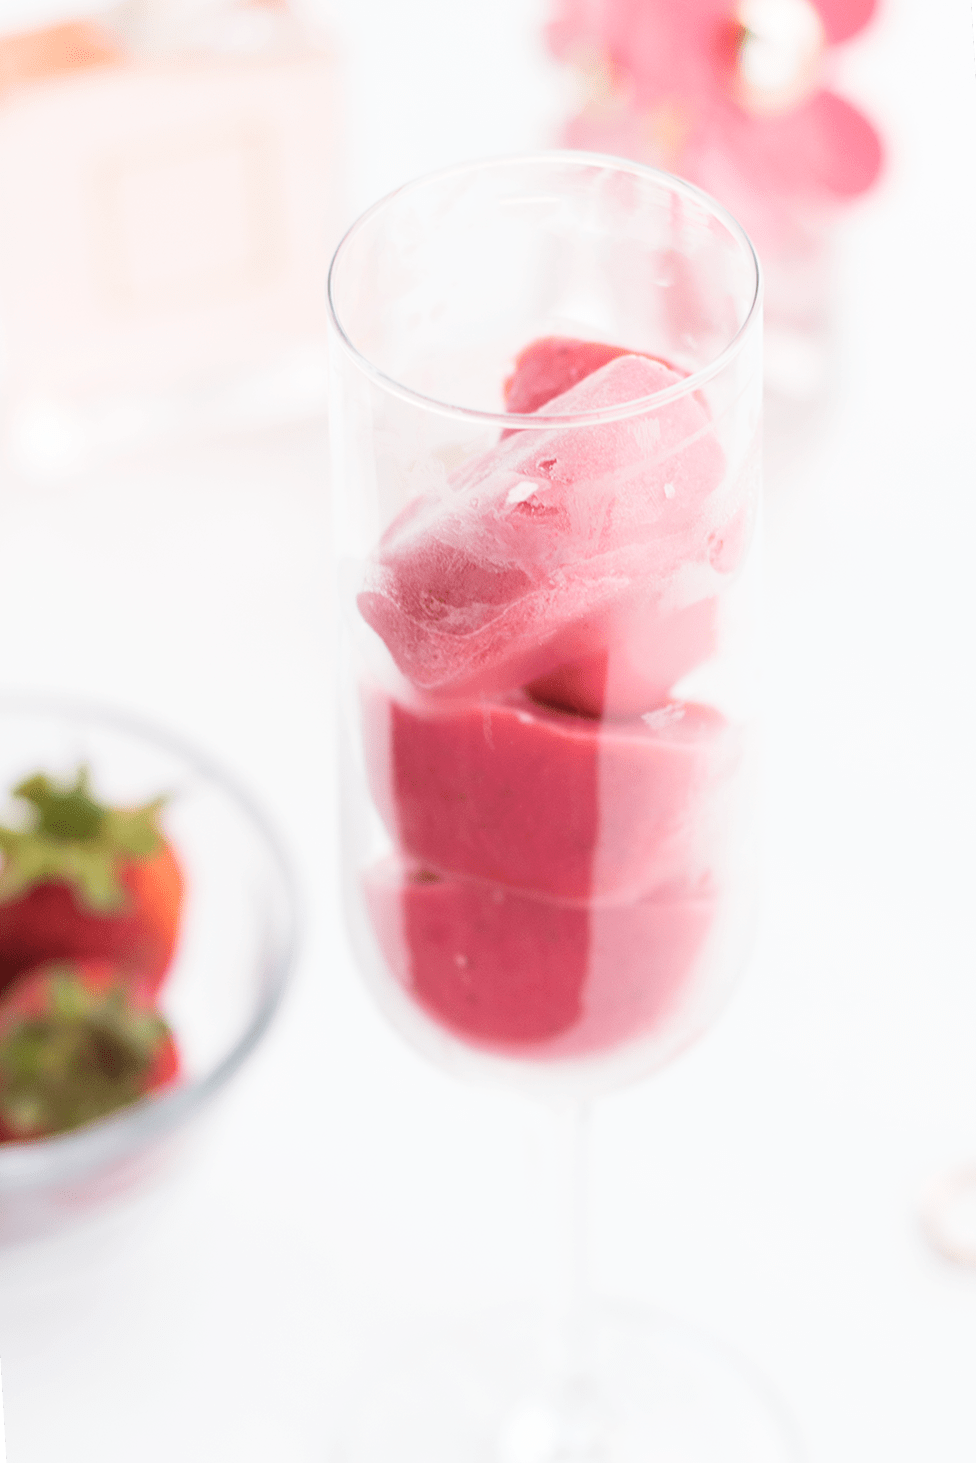 DIY Strawberry Ice Cubes for Clear, Glowing Skin